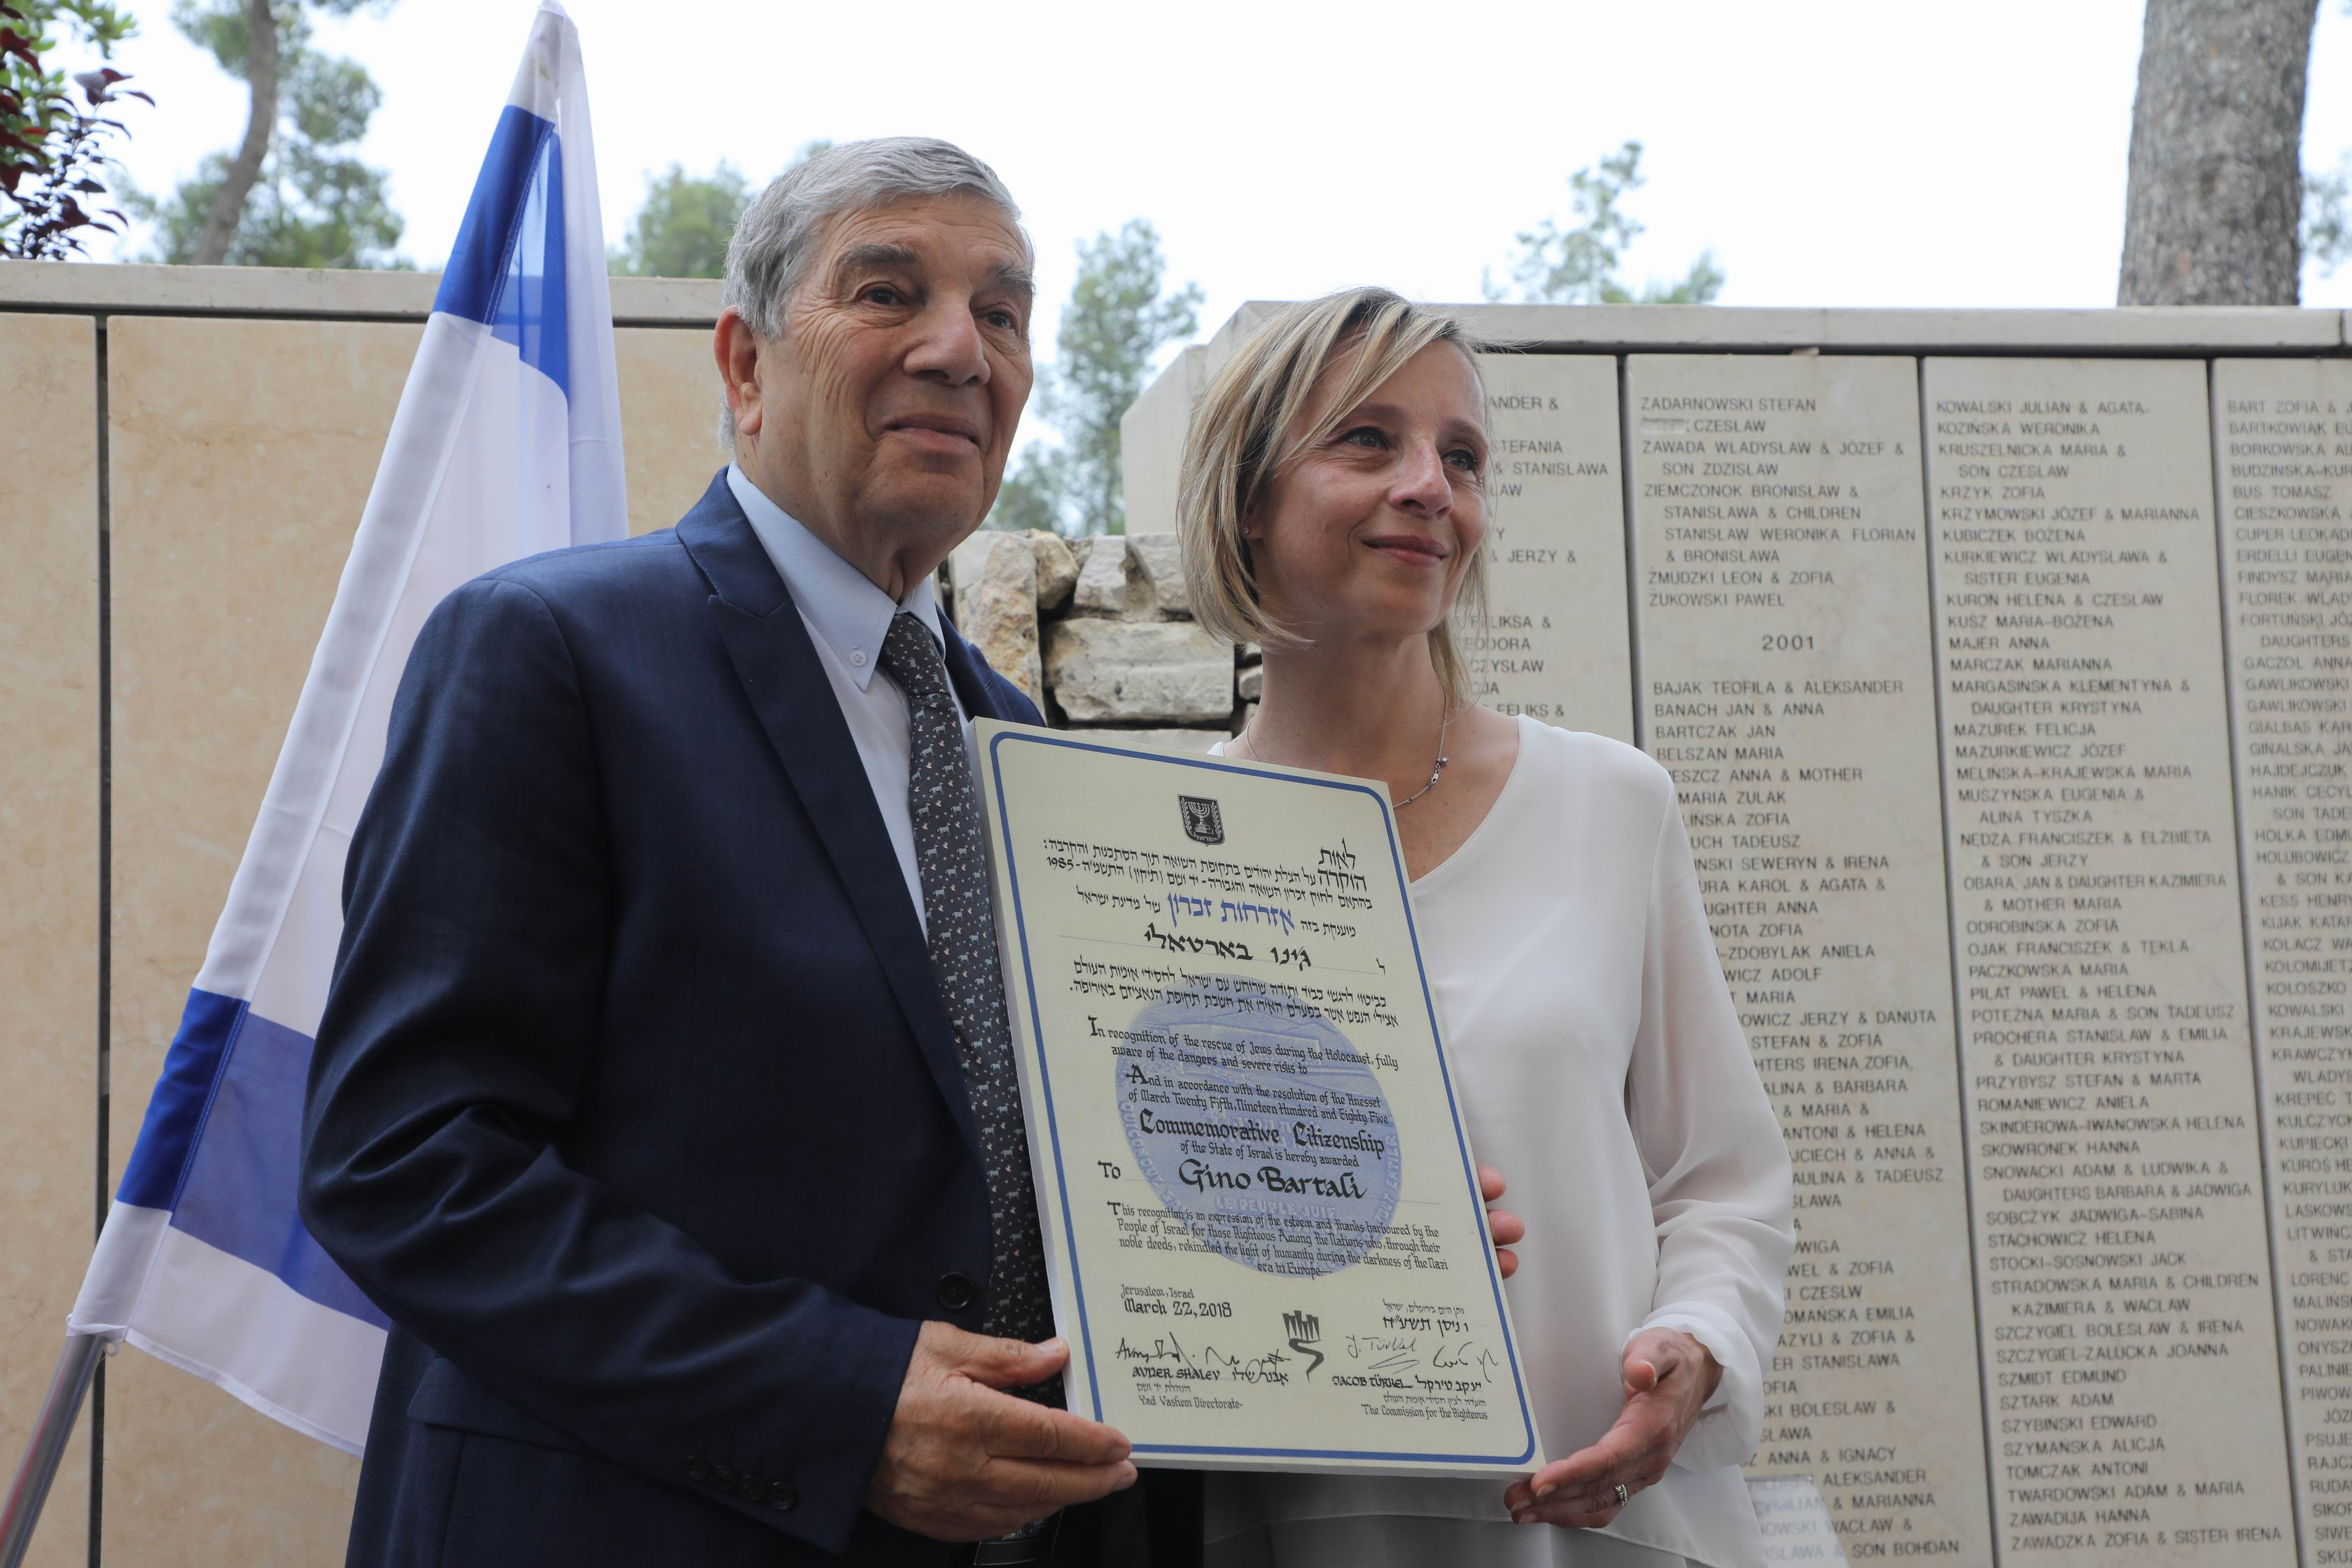 Avner Shalev presented Gioia Bartali with a certificate of Commemorative Citizenship of the State of Israel for her late grandfather, Gino Bartali